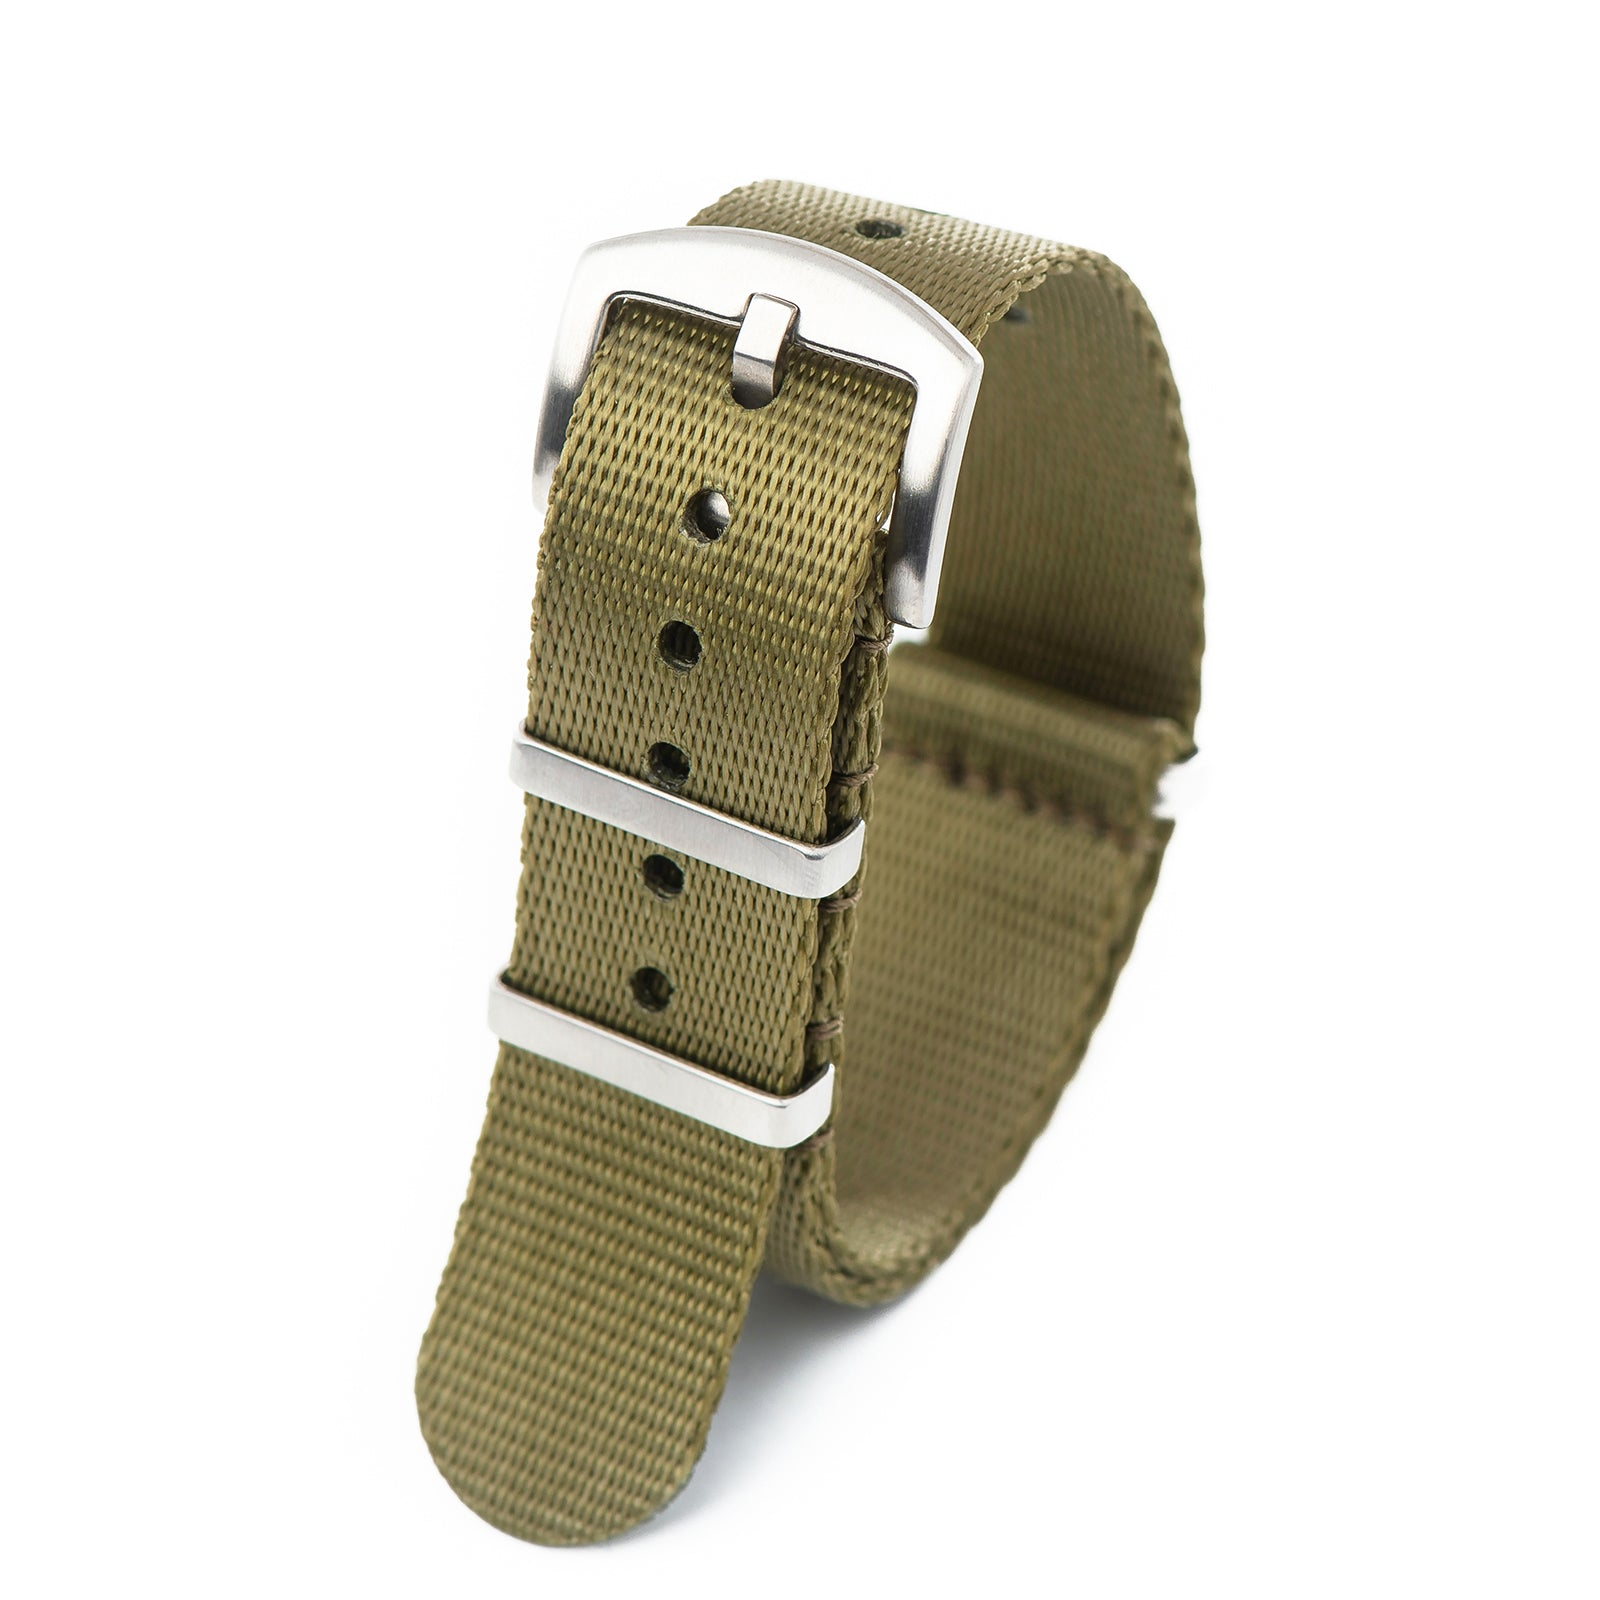 20mm 22mm Premium Seat Belt Nylon NATO Watch Strap - Olive Green